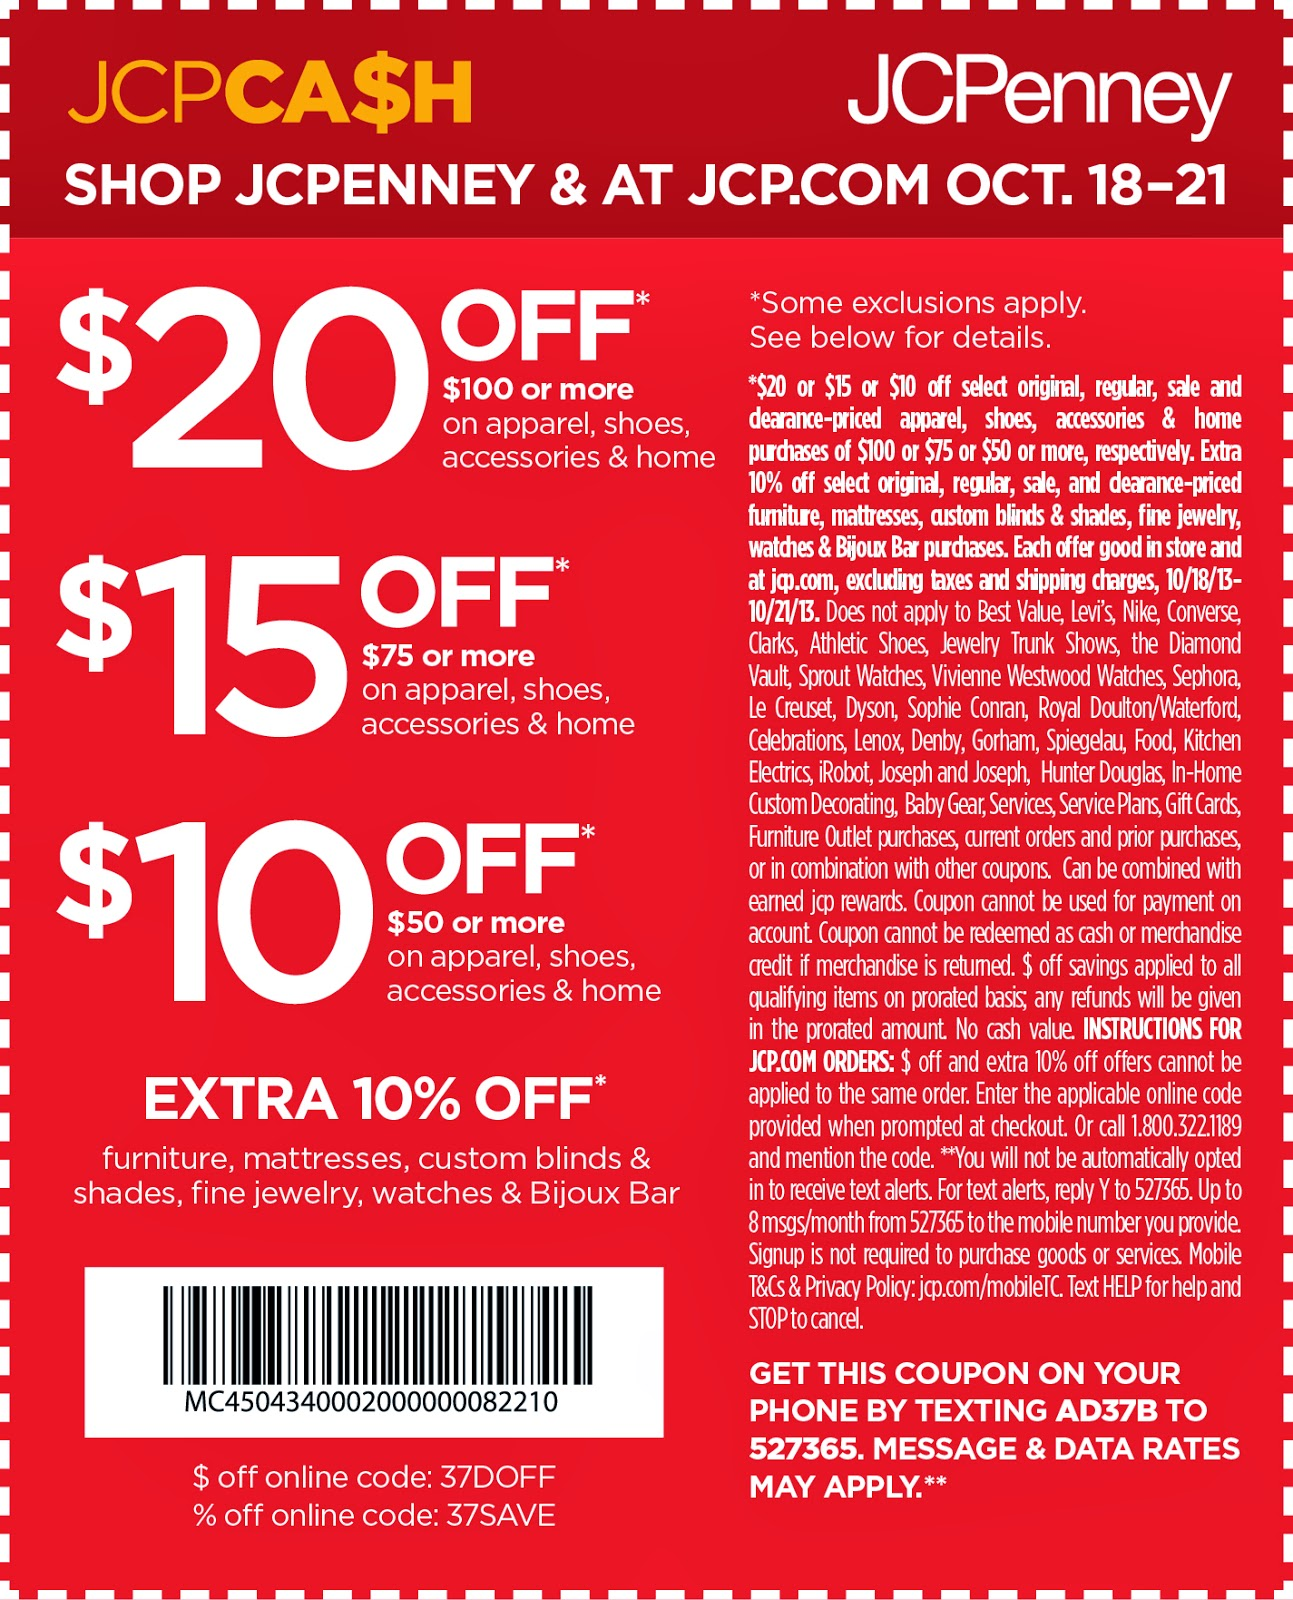 large jcpenney buy at mattresses banner a mattress n g image serta jcp